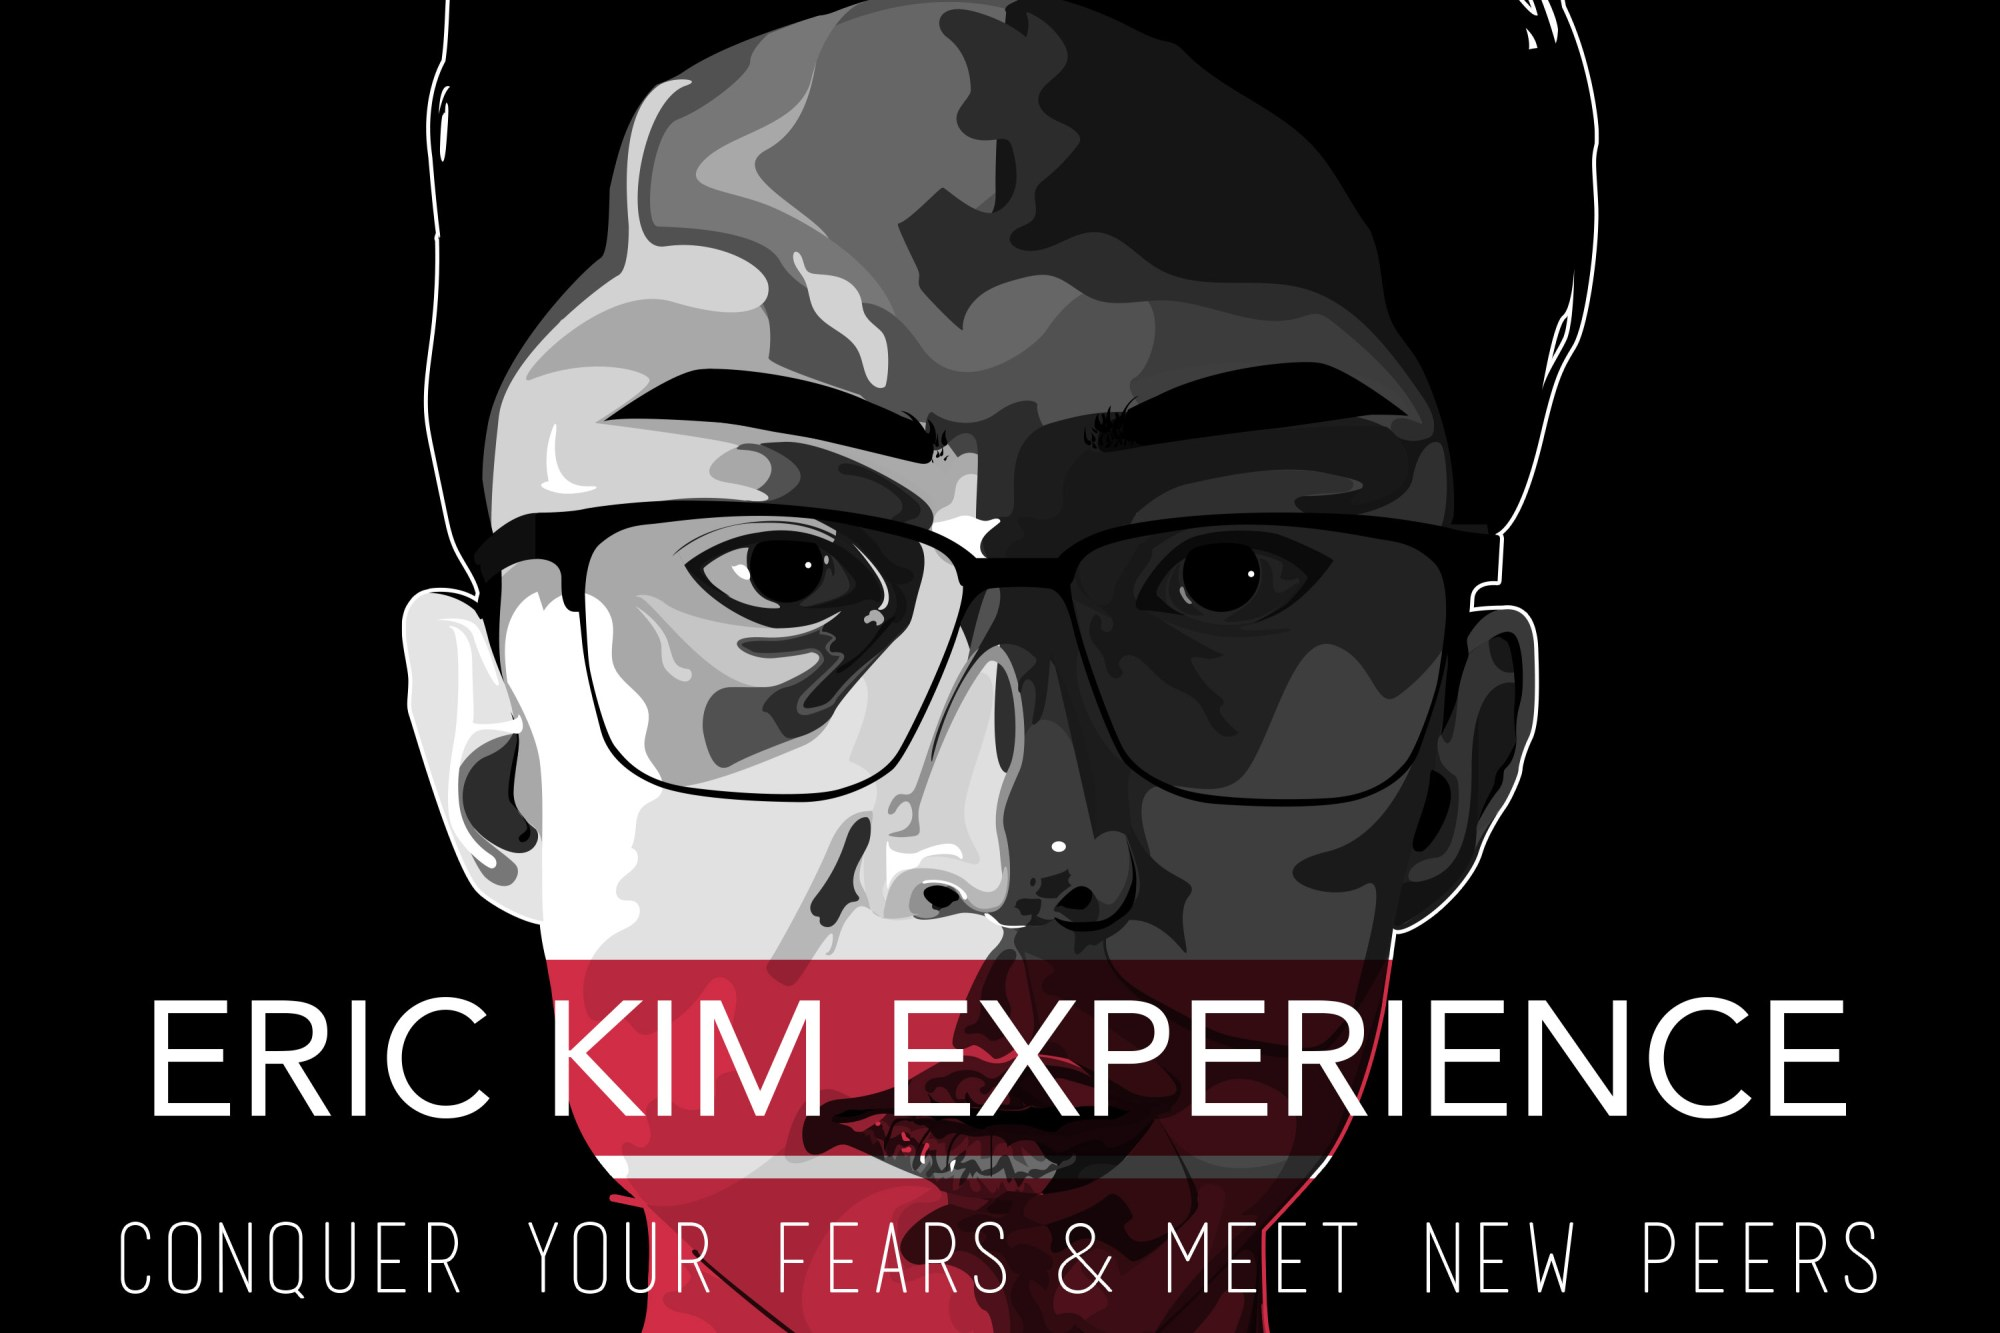 Conquer Your Fears and Meet New Peers